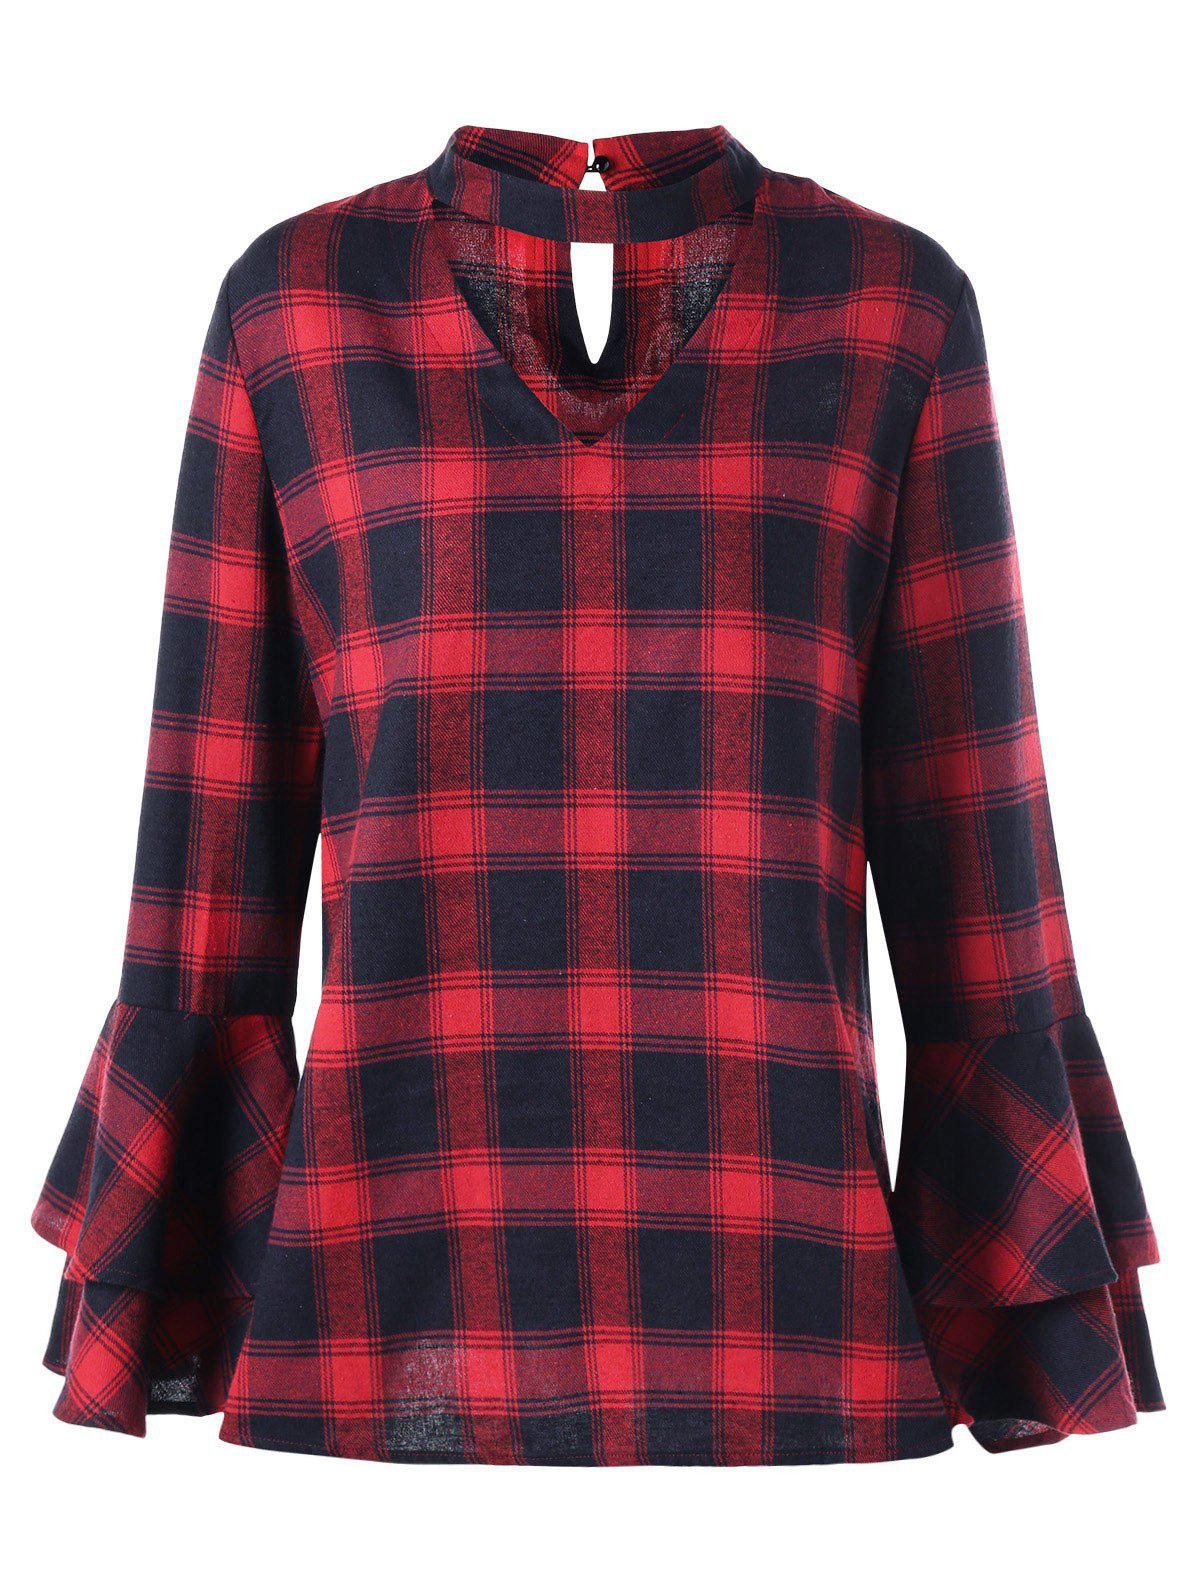 Plus Size Plaid Flare Sleeve Choker Blouse - RED/BLACK 5XL